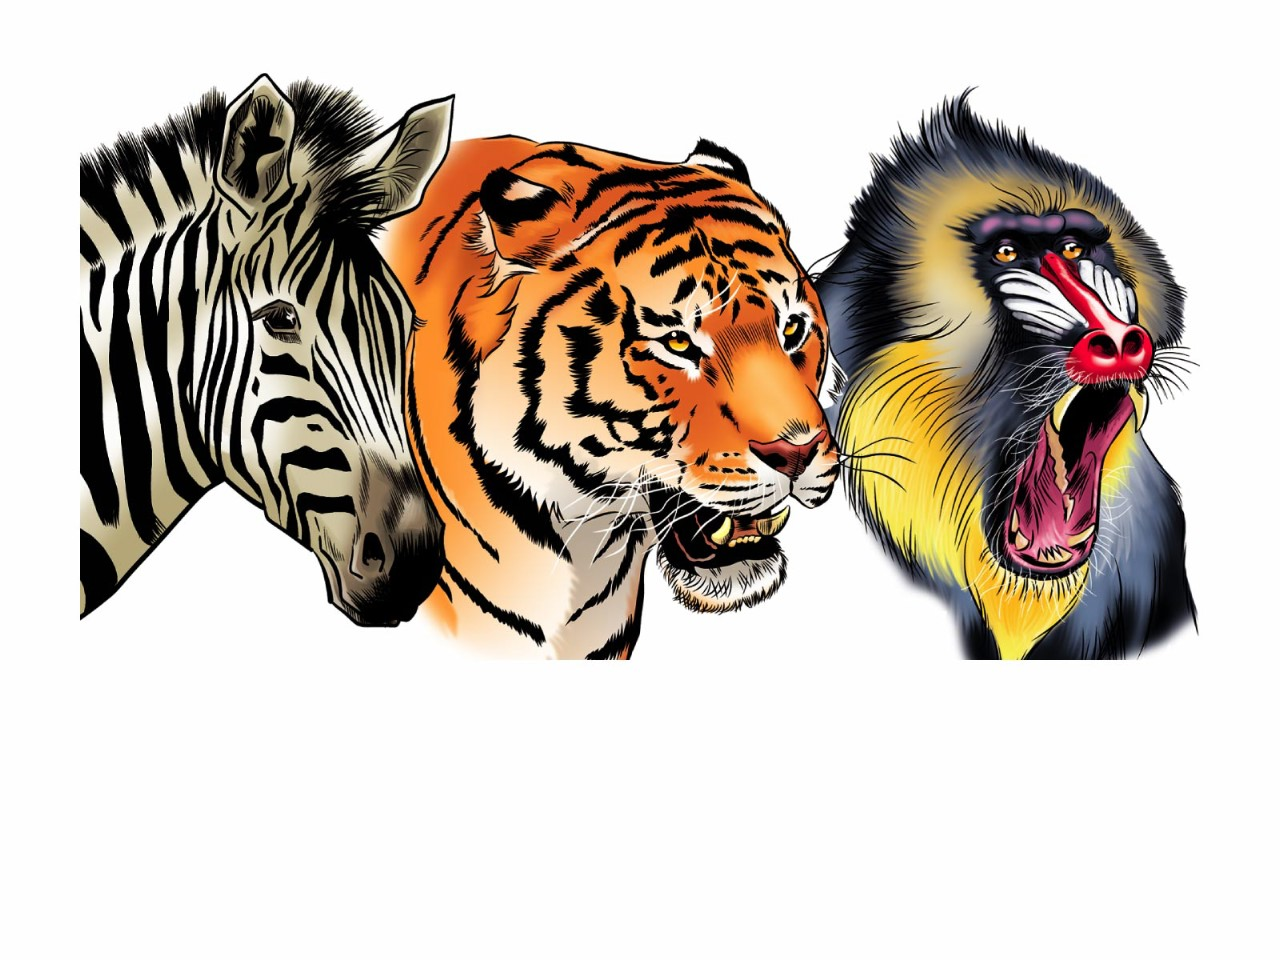 BEAUDENONThierry-Illustrations-ANIMAUX-4367